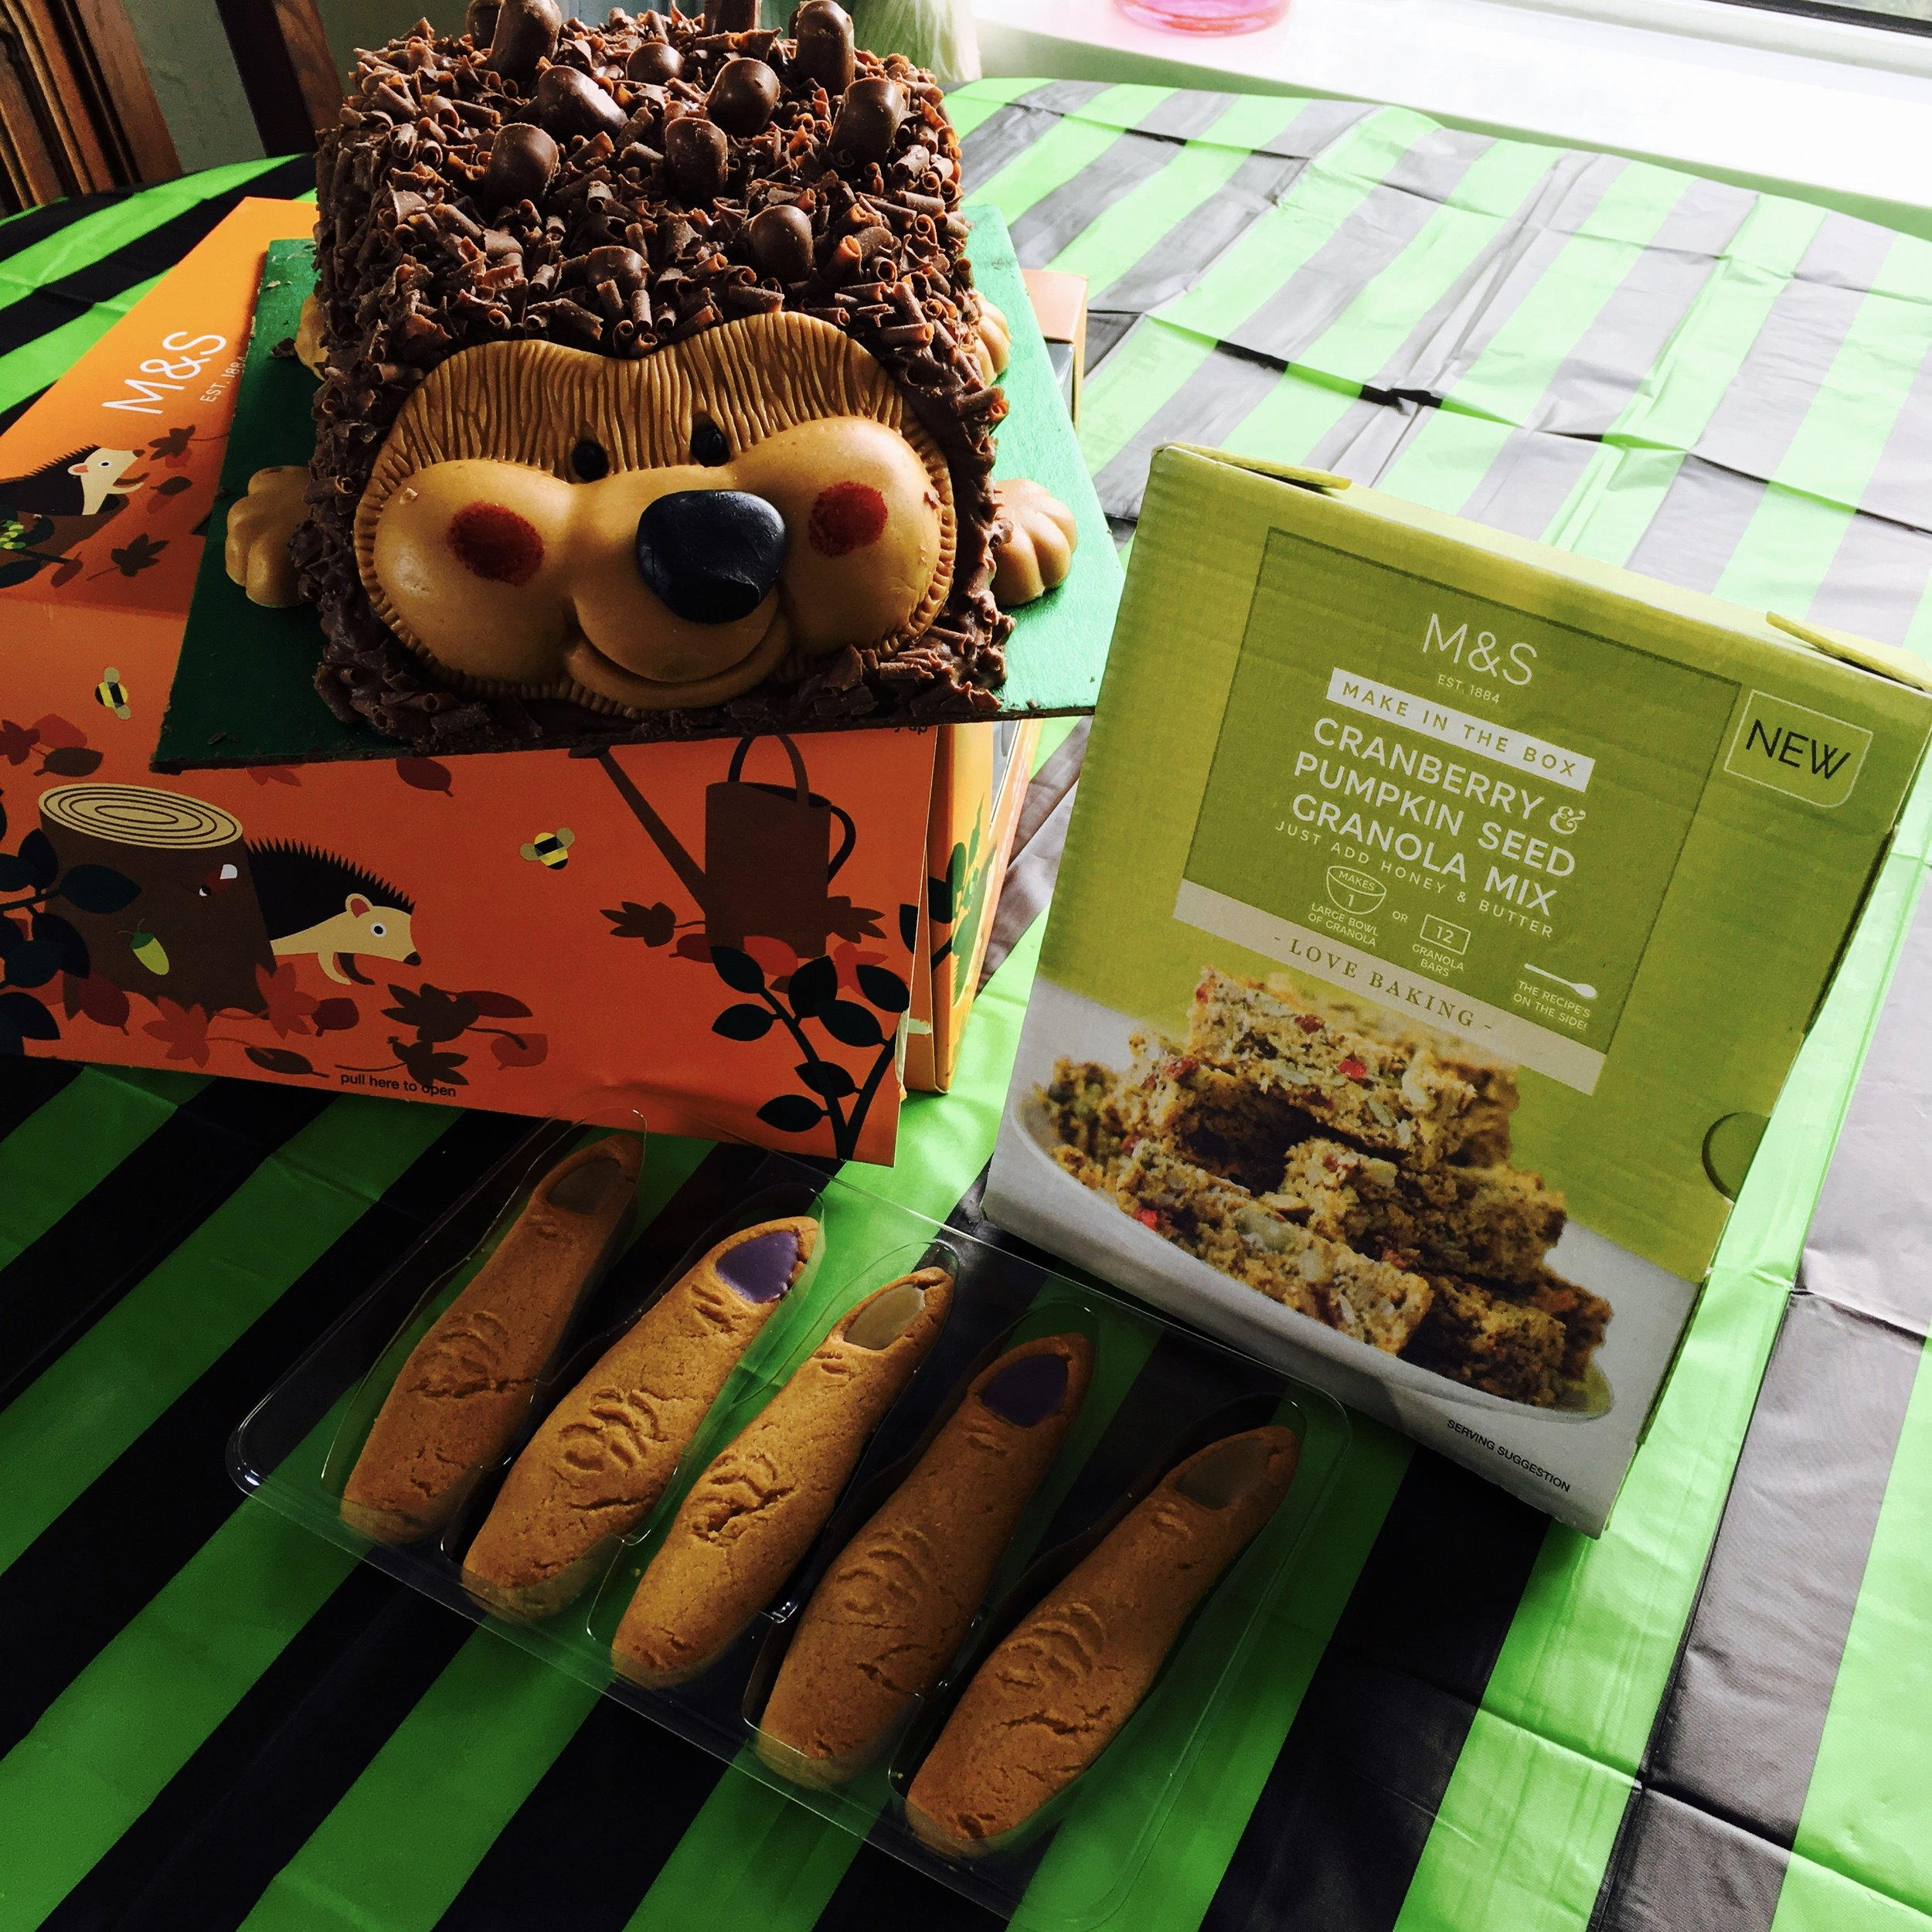 Harry hedgehog £10 : granola mix £2.50 : witches' fingers £1.50